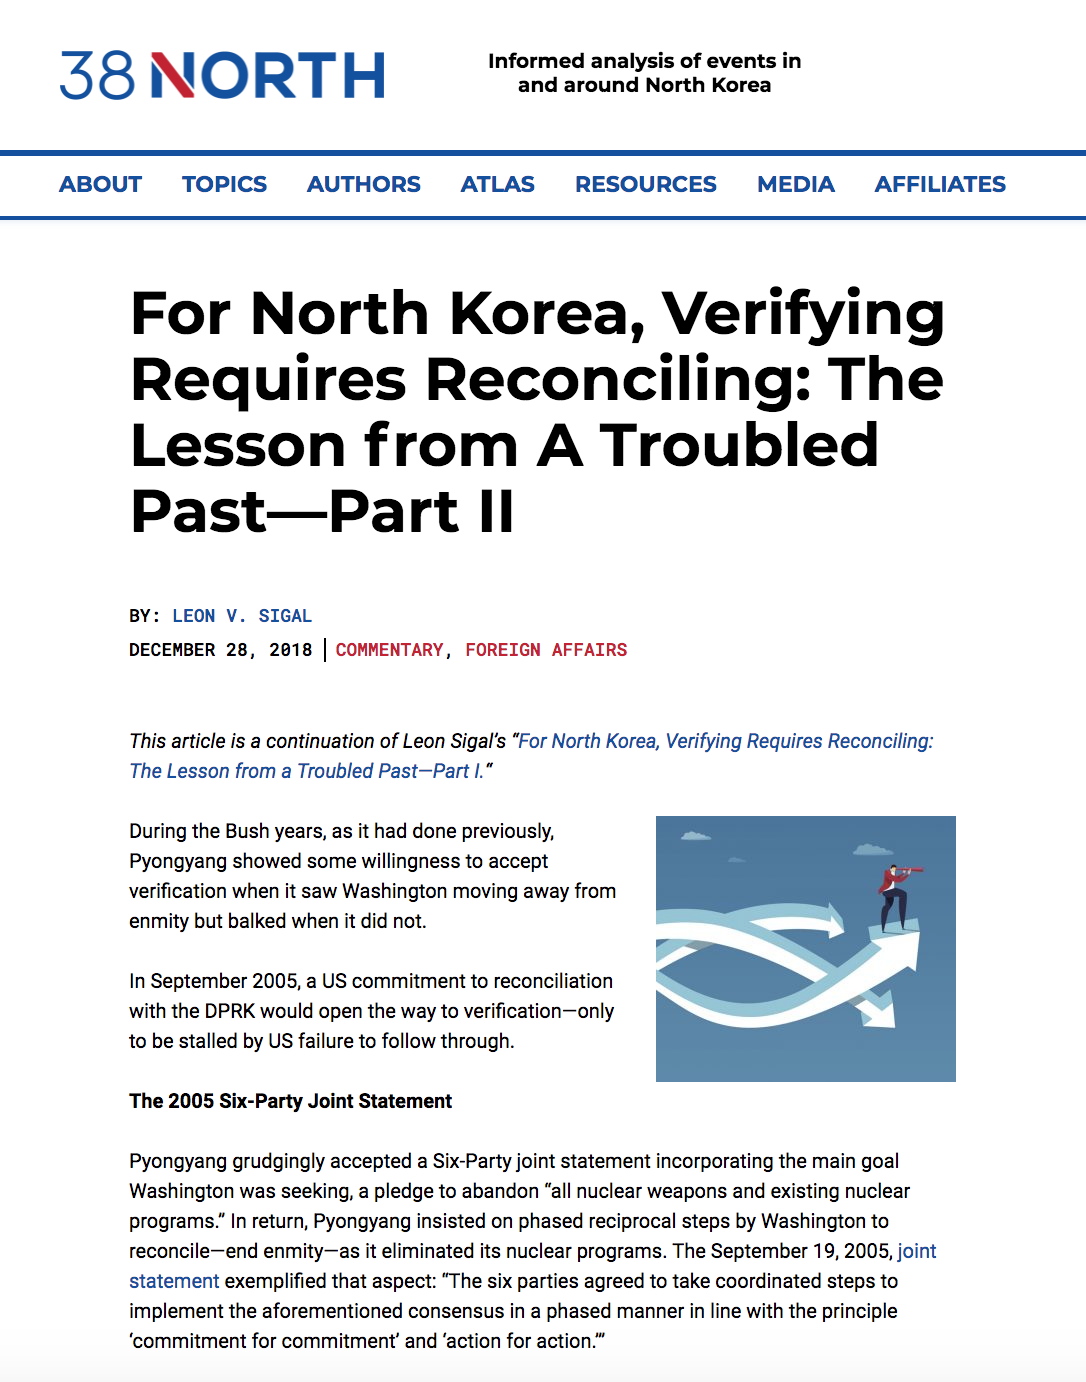 For North Korea, Verifying Requires Reconciling: The Lesson from A